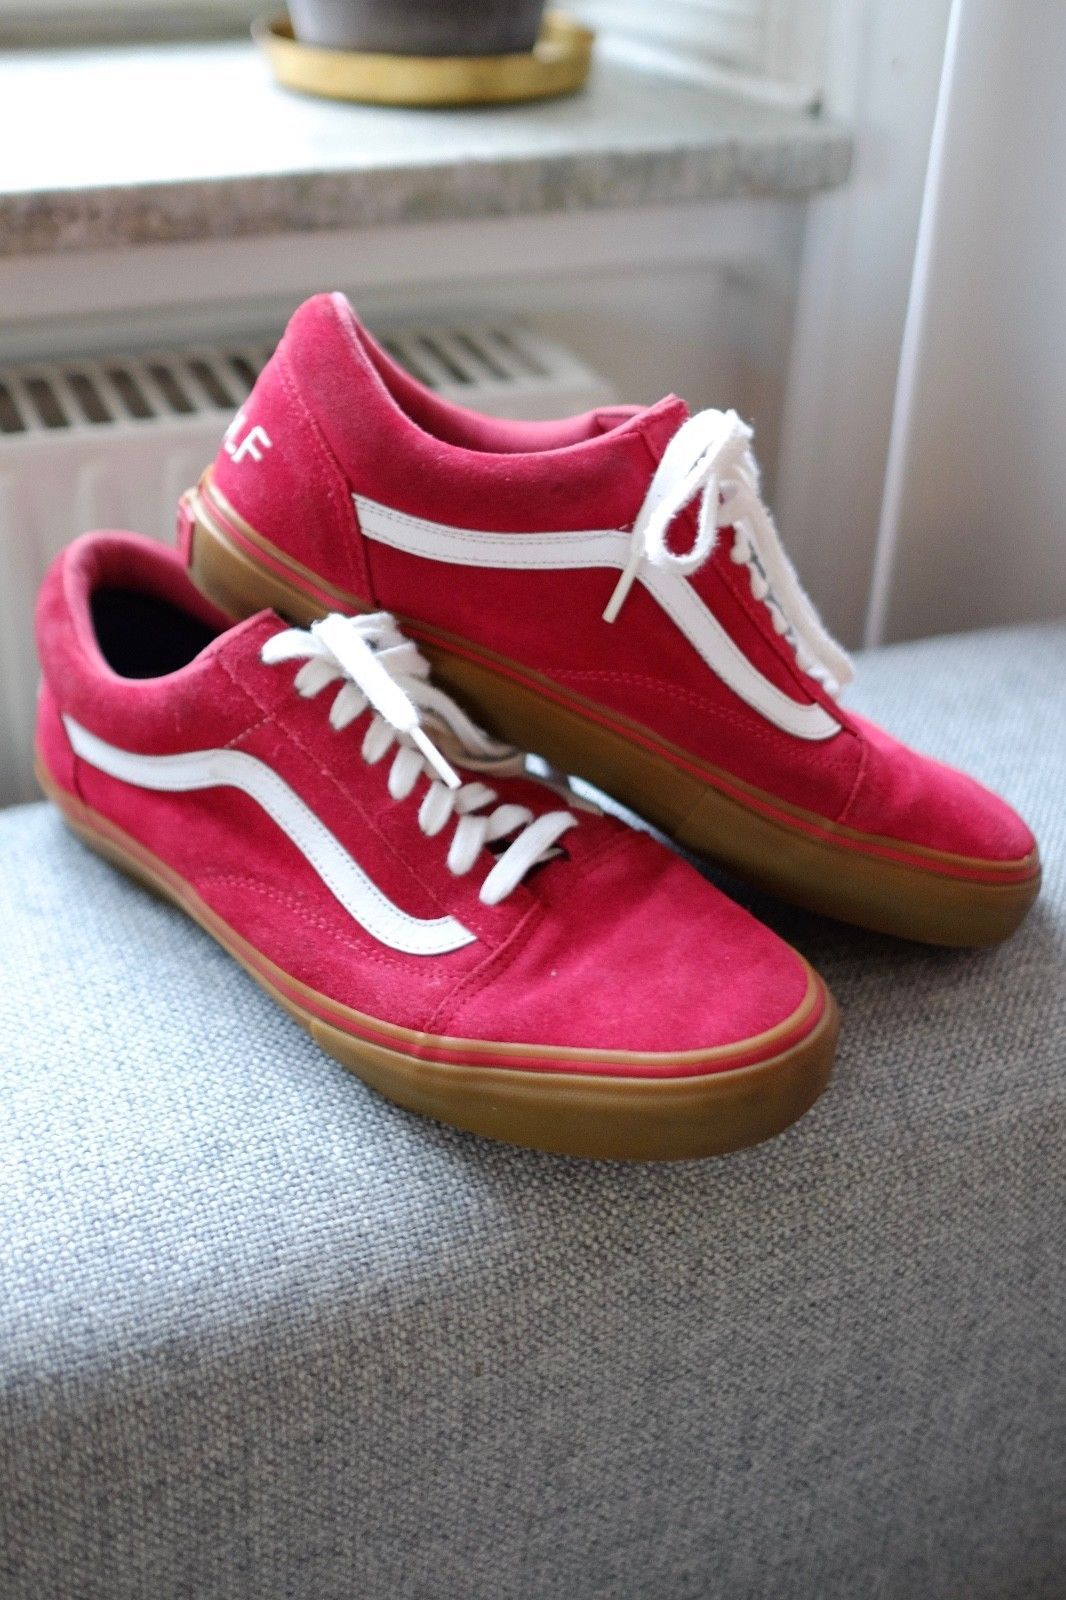 6d297ad2ce7f VANS SYNDICATE OLD SKOOL PRO